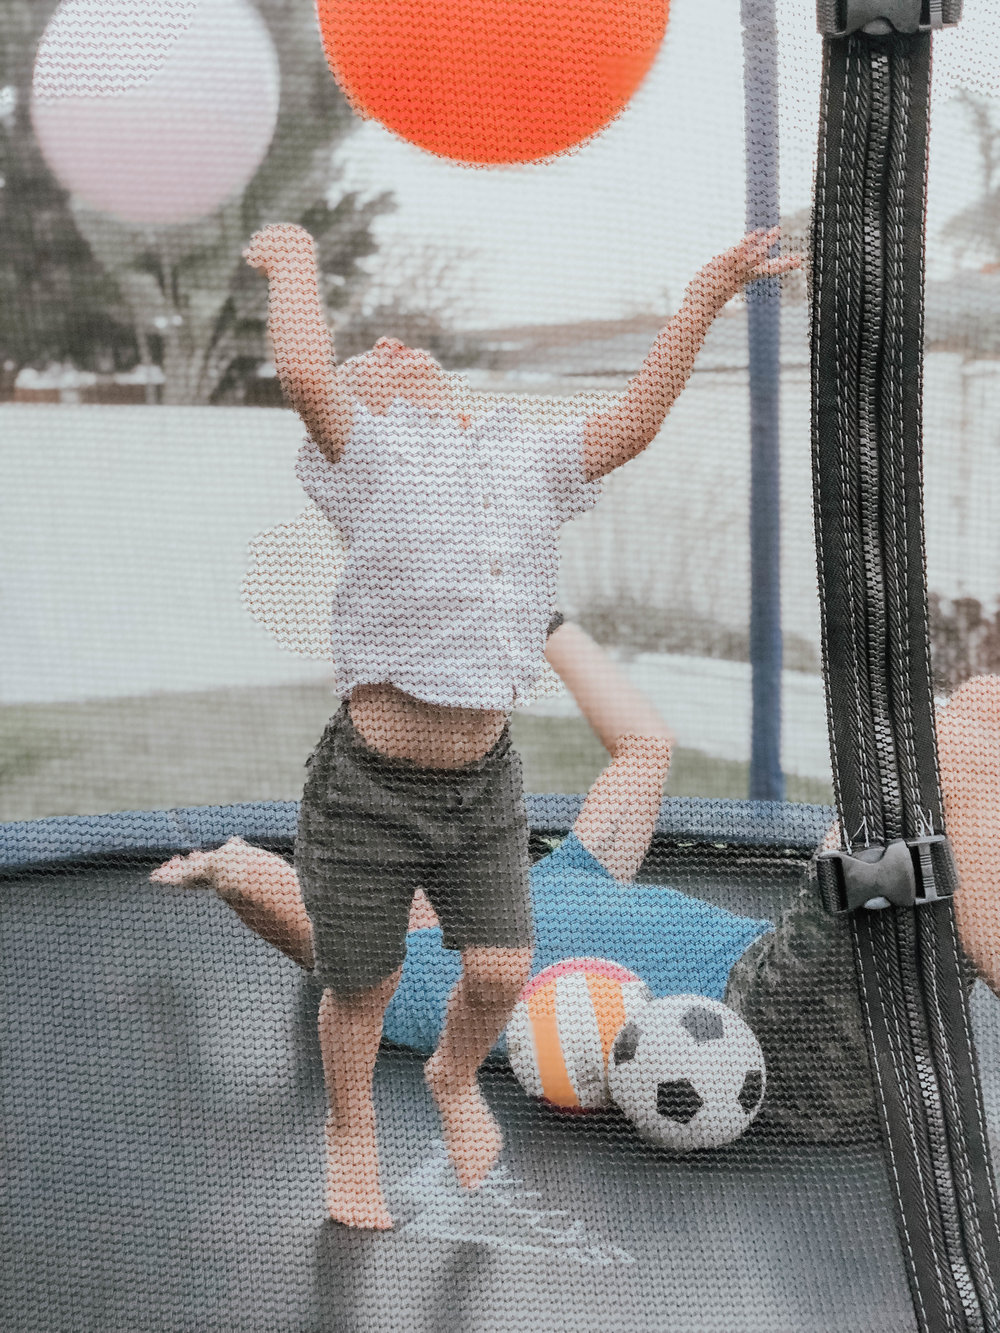 trampoline with dad.jpg